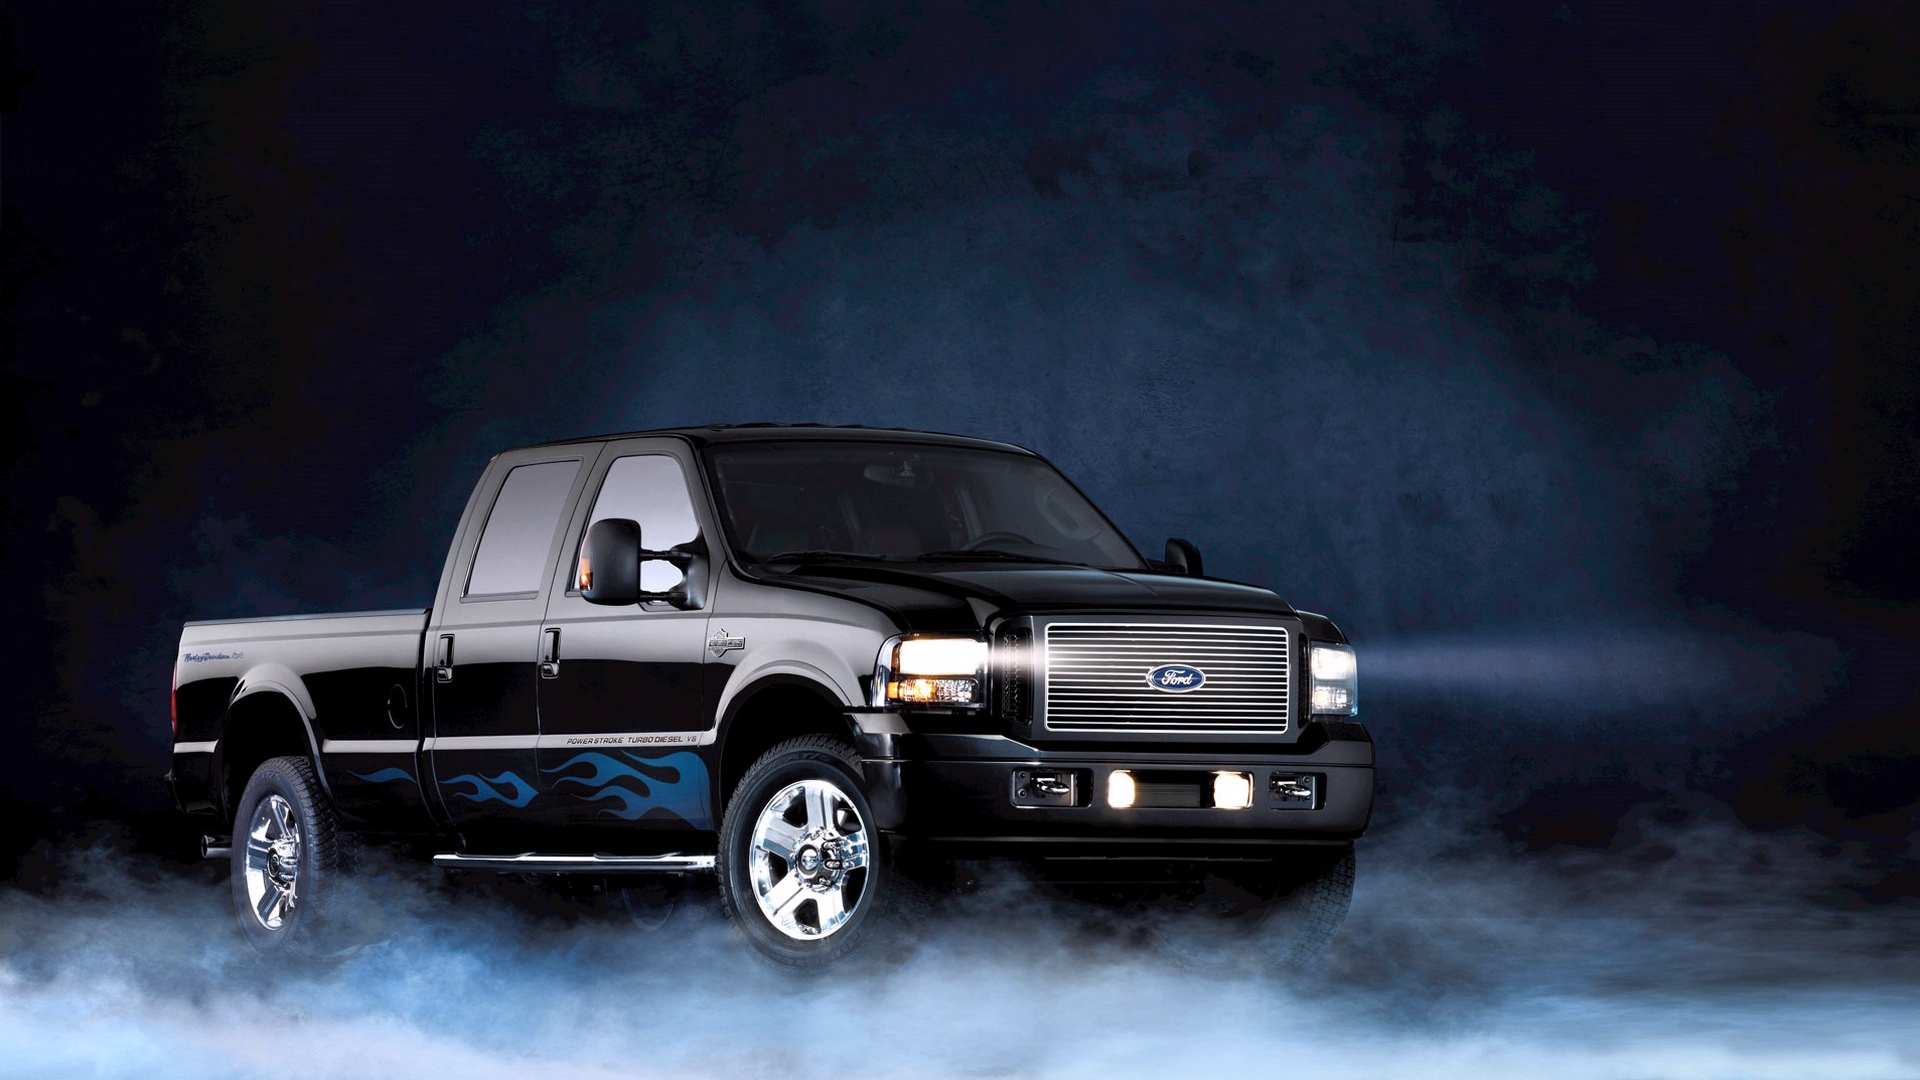 Ford F250 Harley Davidson HD Wallpaper Background Image 1920x1080